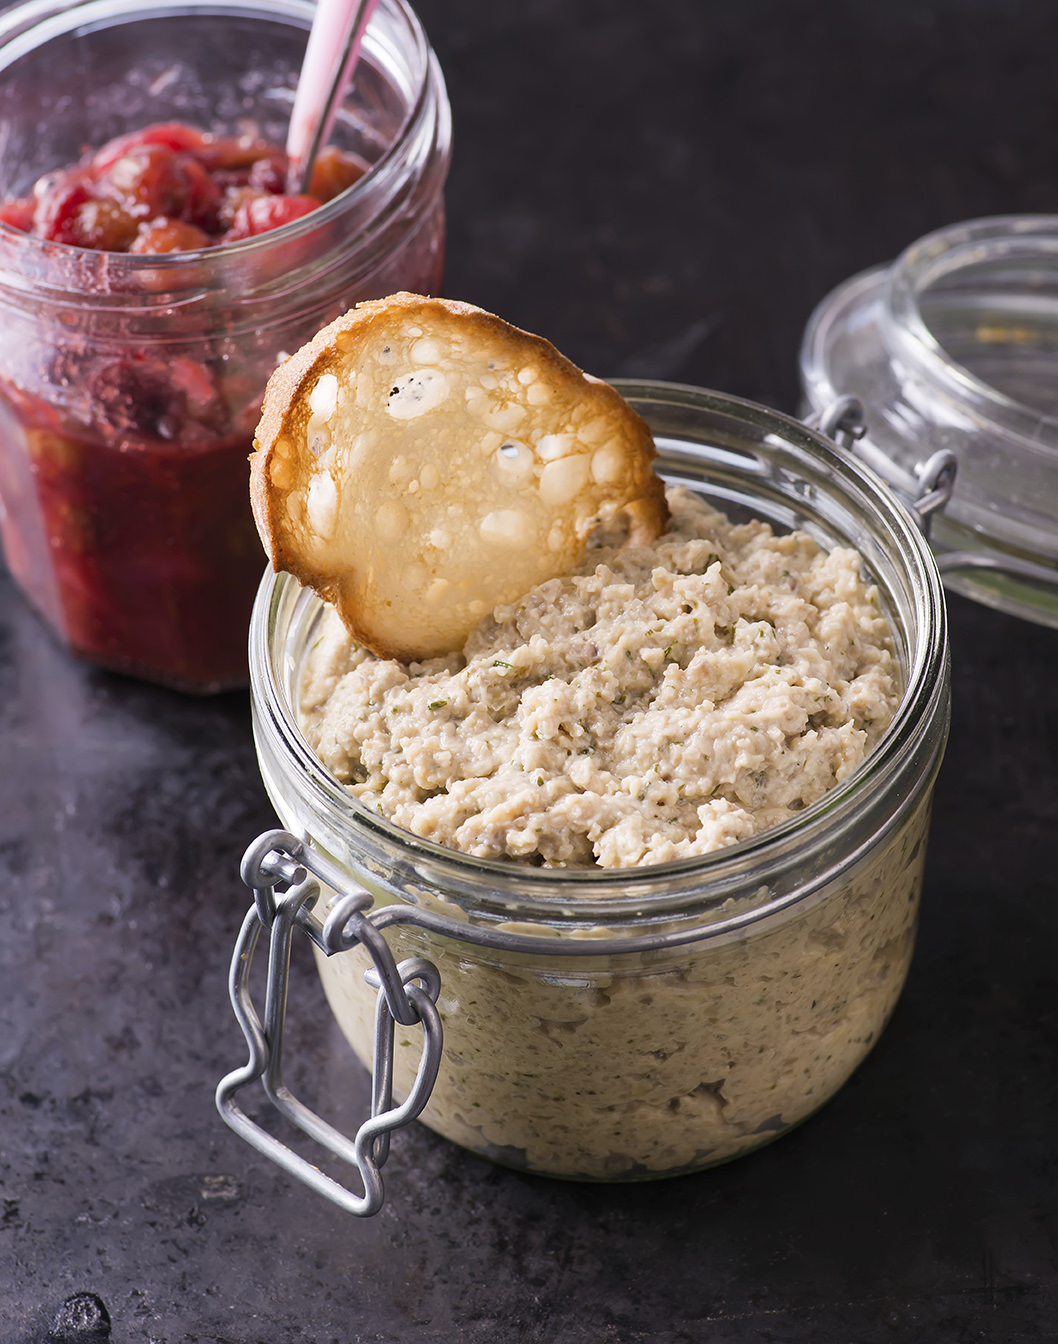 Mushroom pate and cranberry relish in a jars over dark background, selective focus